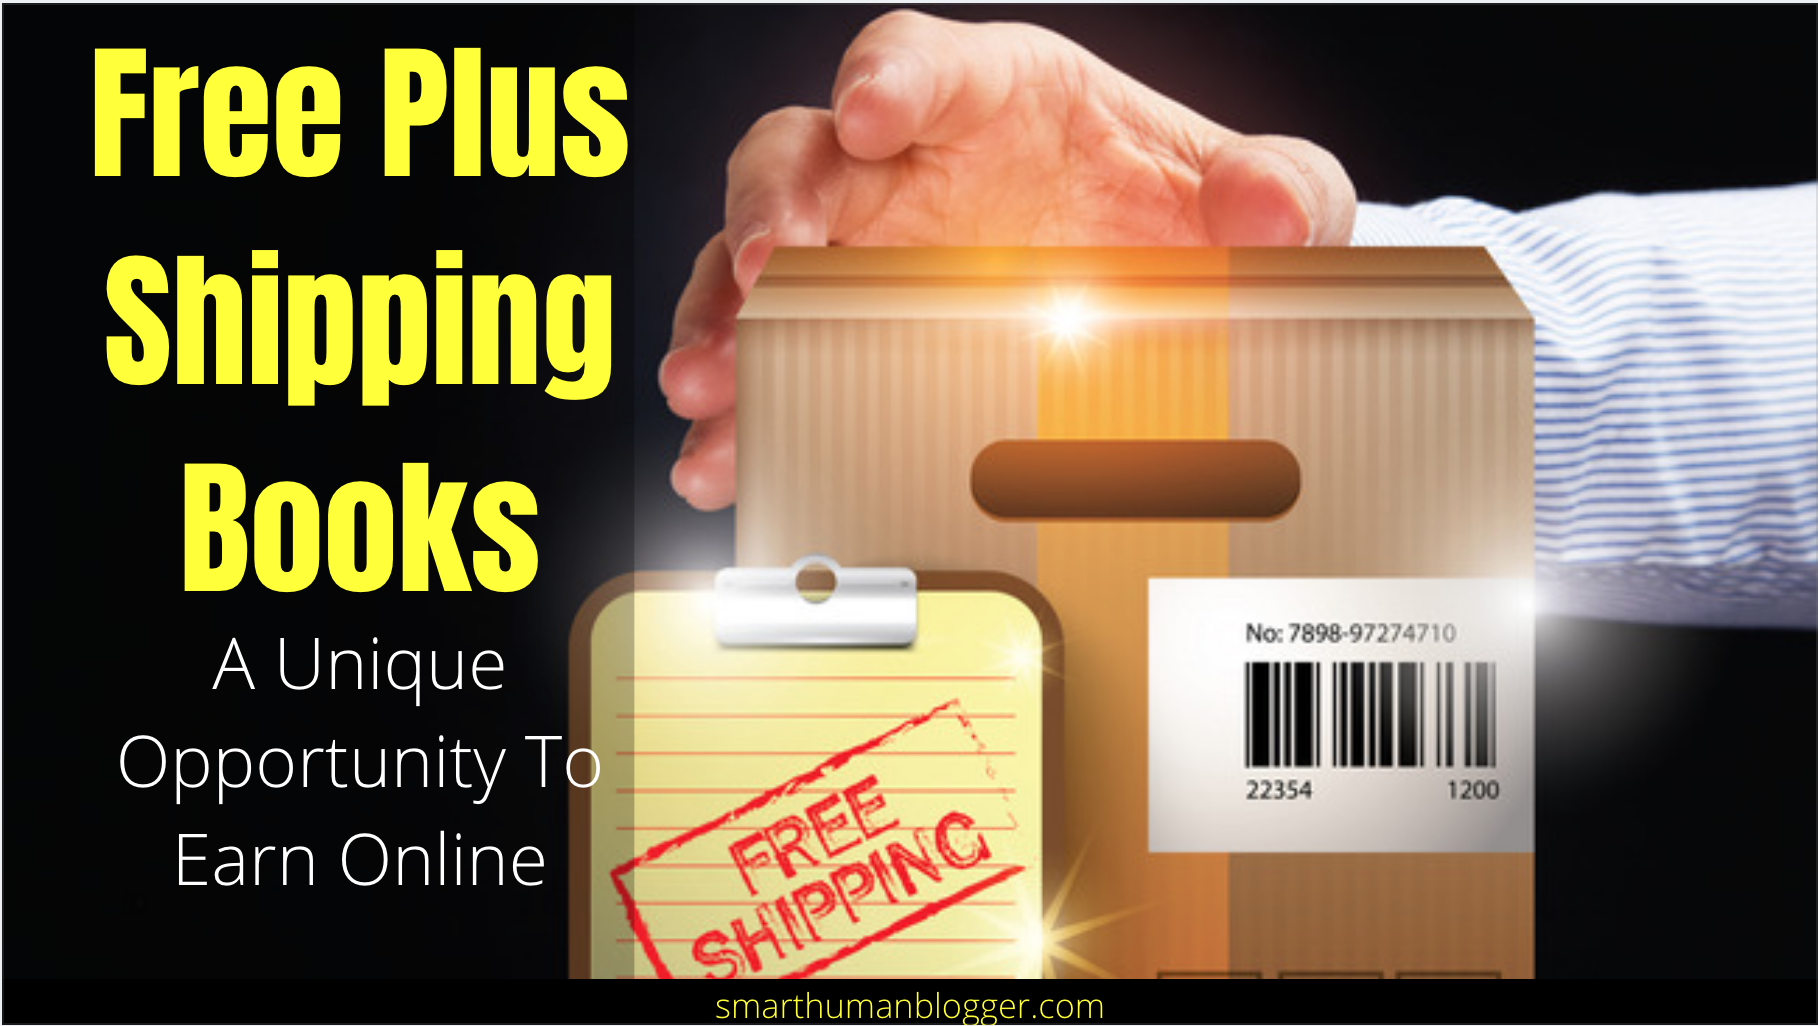 Free Plus Shipping Books